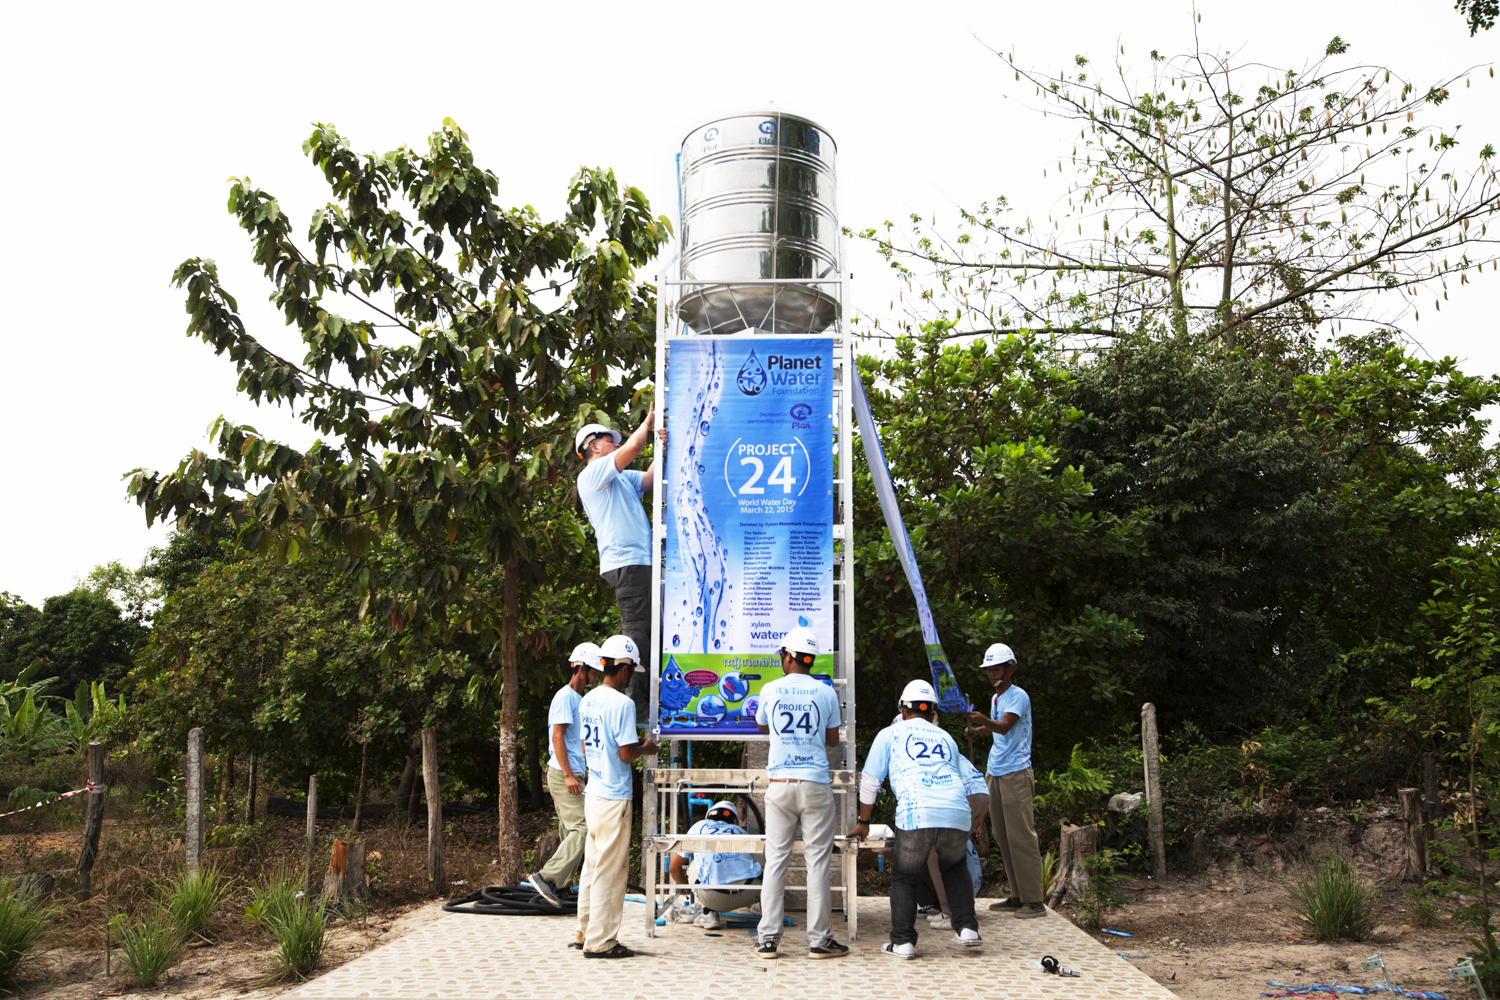 planetwater-8.jpg